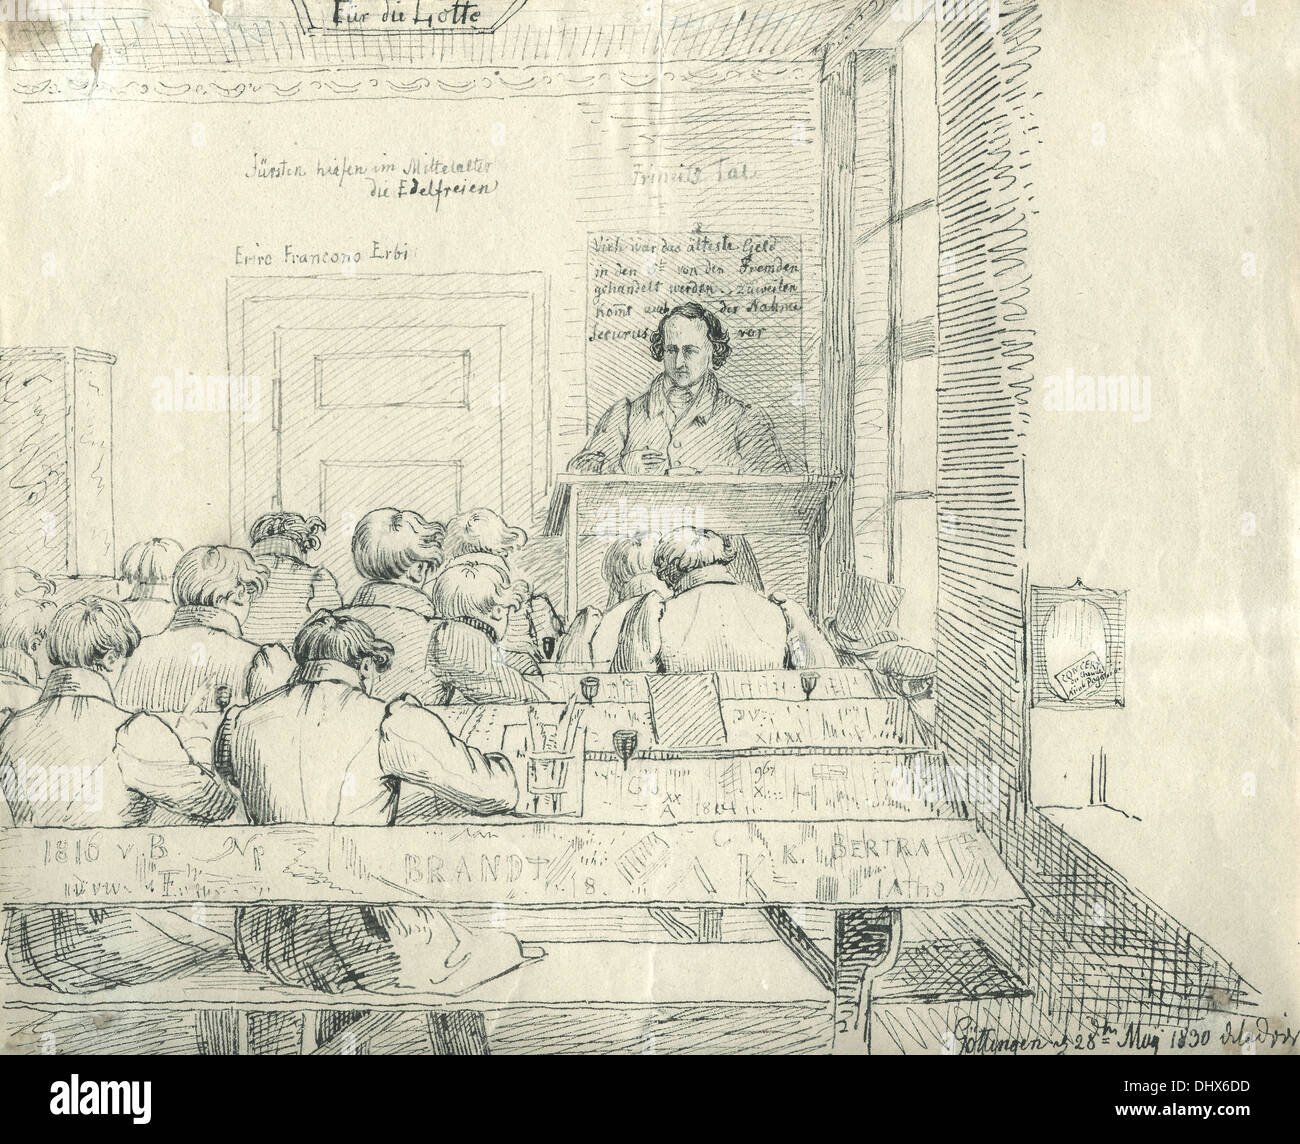 Jacob Grimm lecturing - illustration by Ludwig Emil Grimm, 1830 - Stock Image